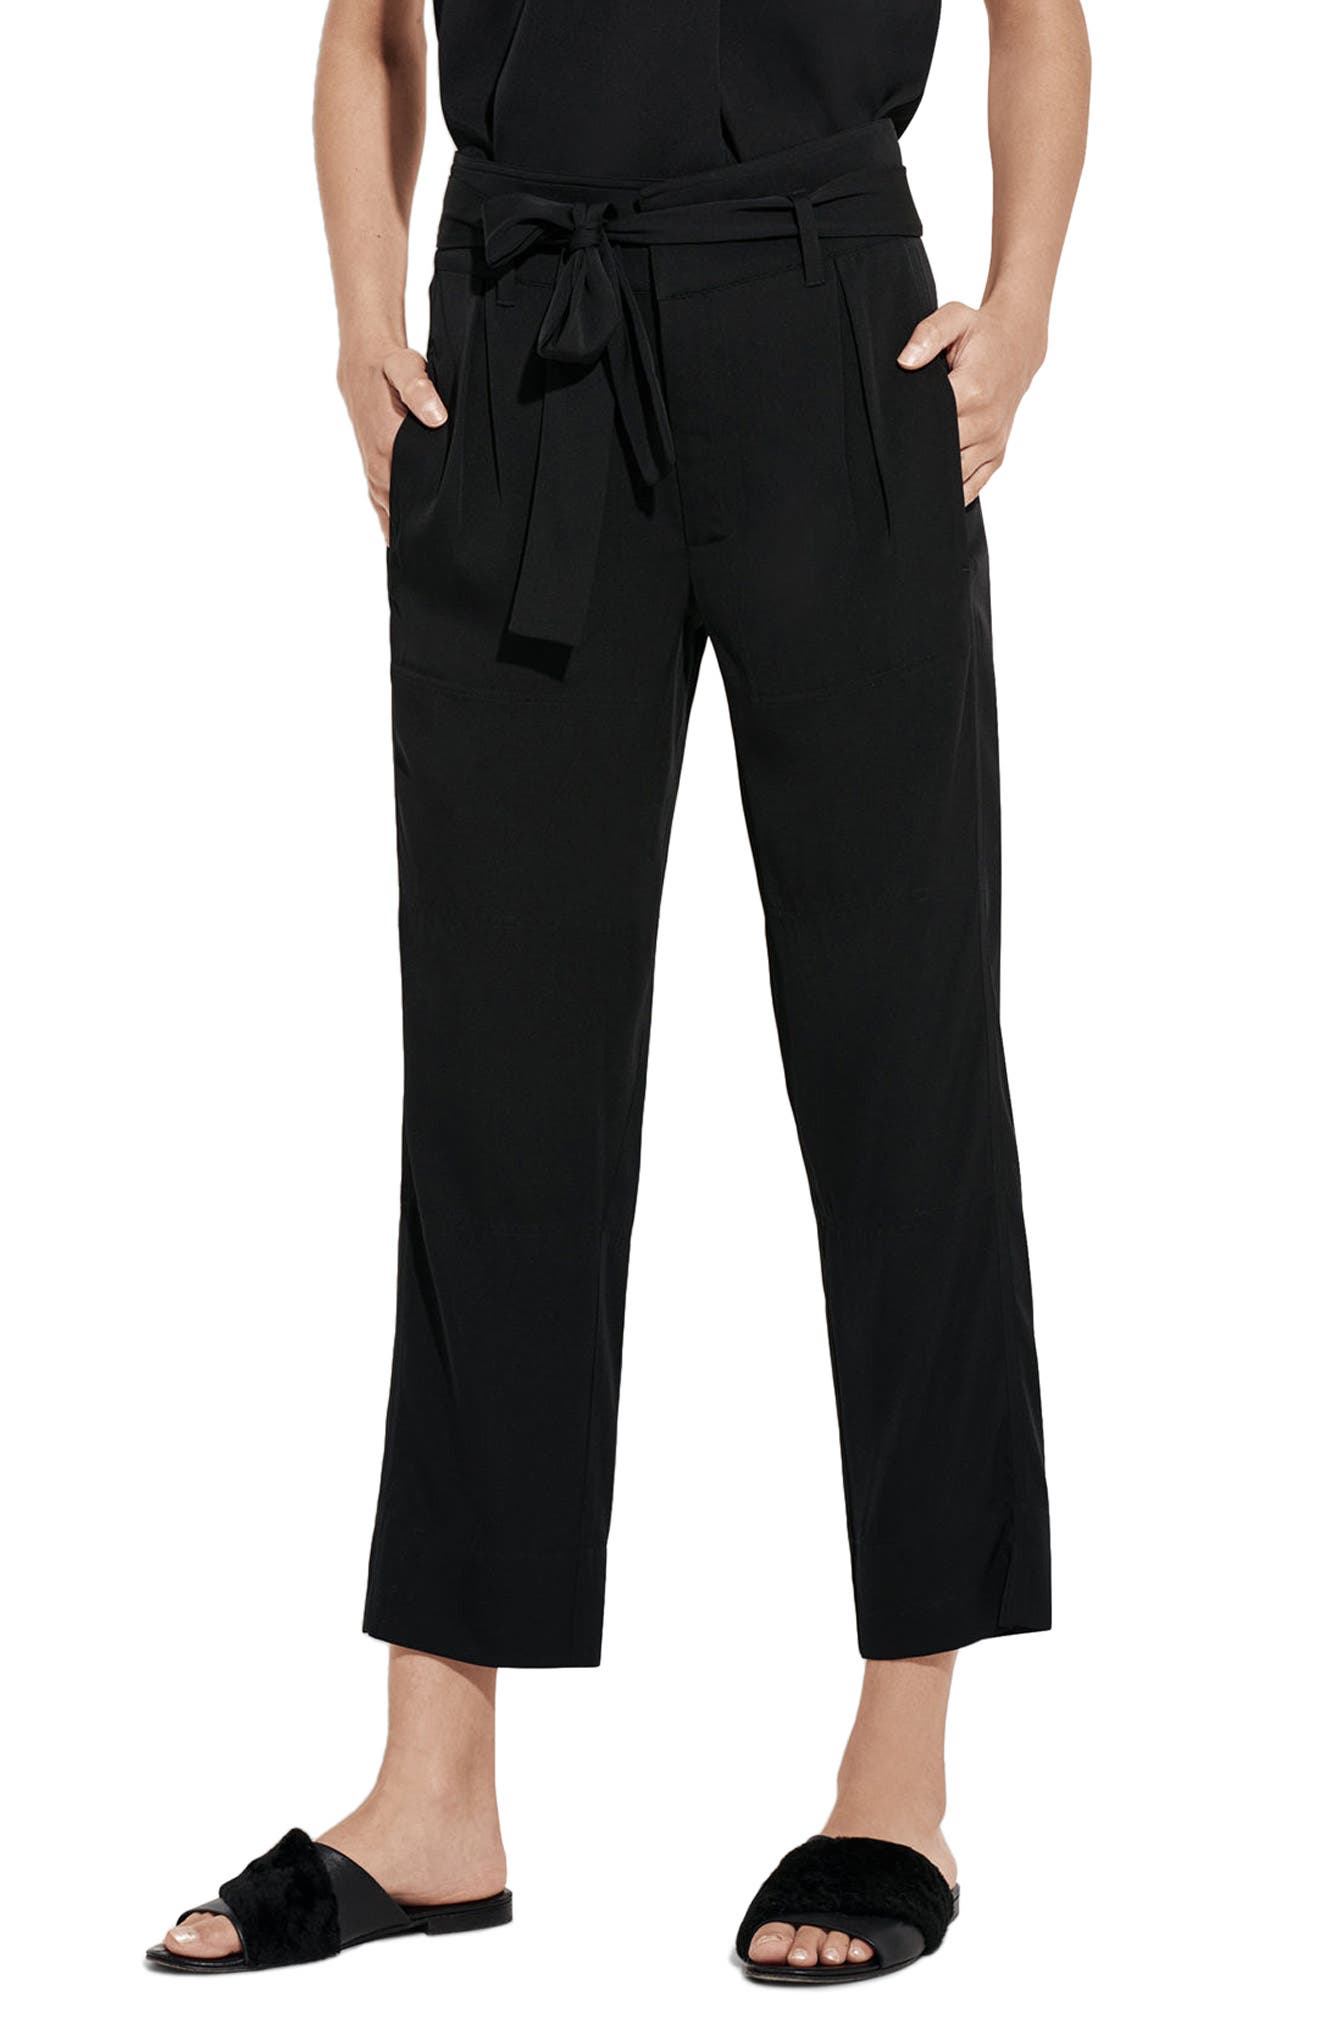 The Mirage High Waist Crop Straight Leg Pants,                         Main,                         color, Black